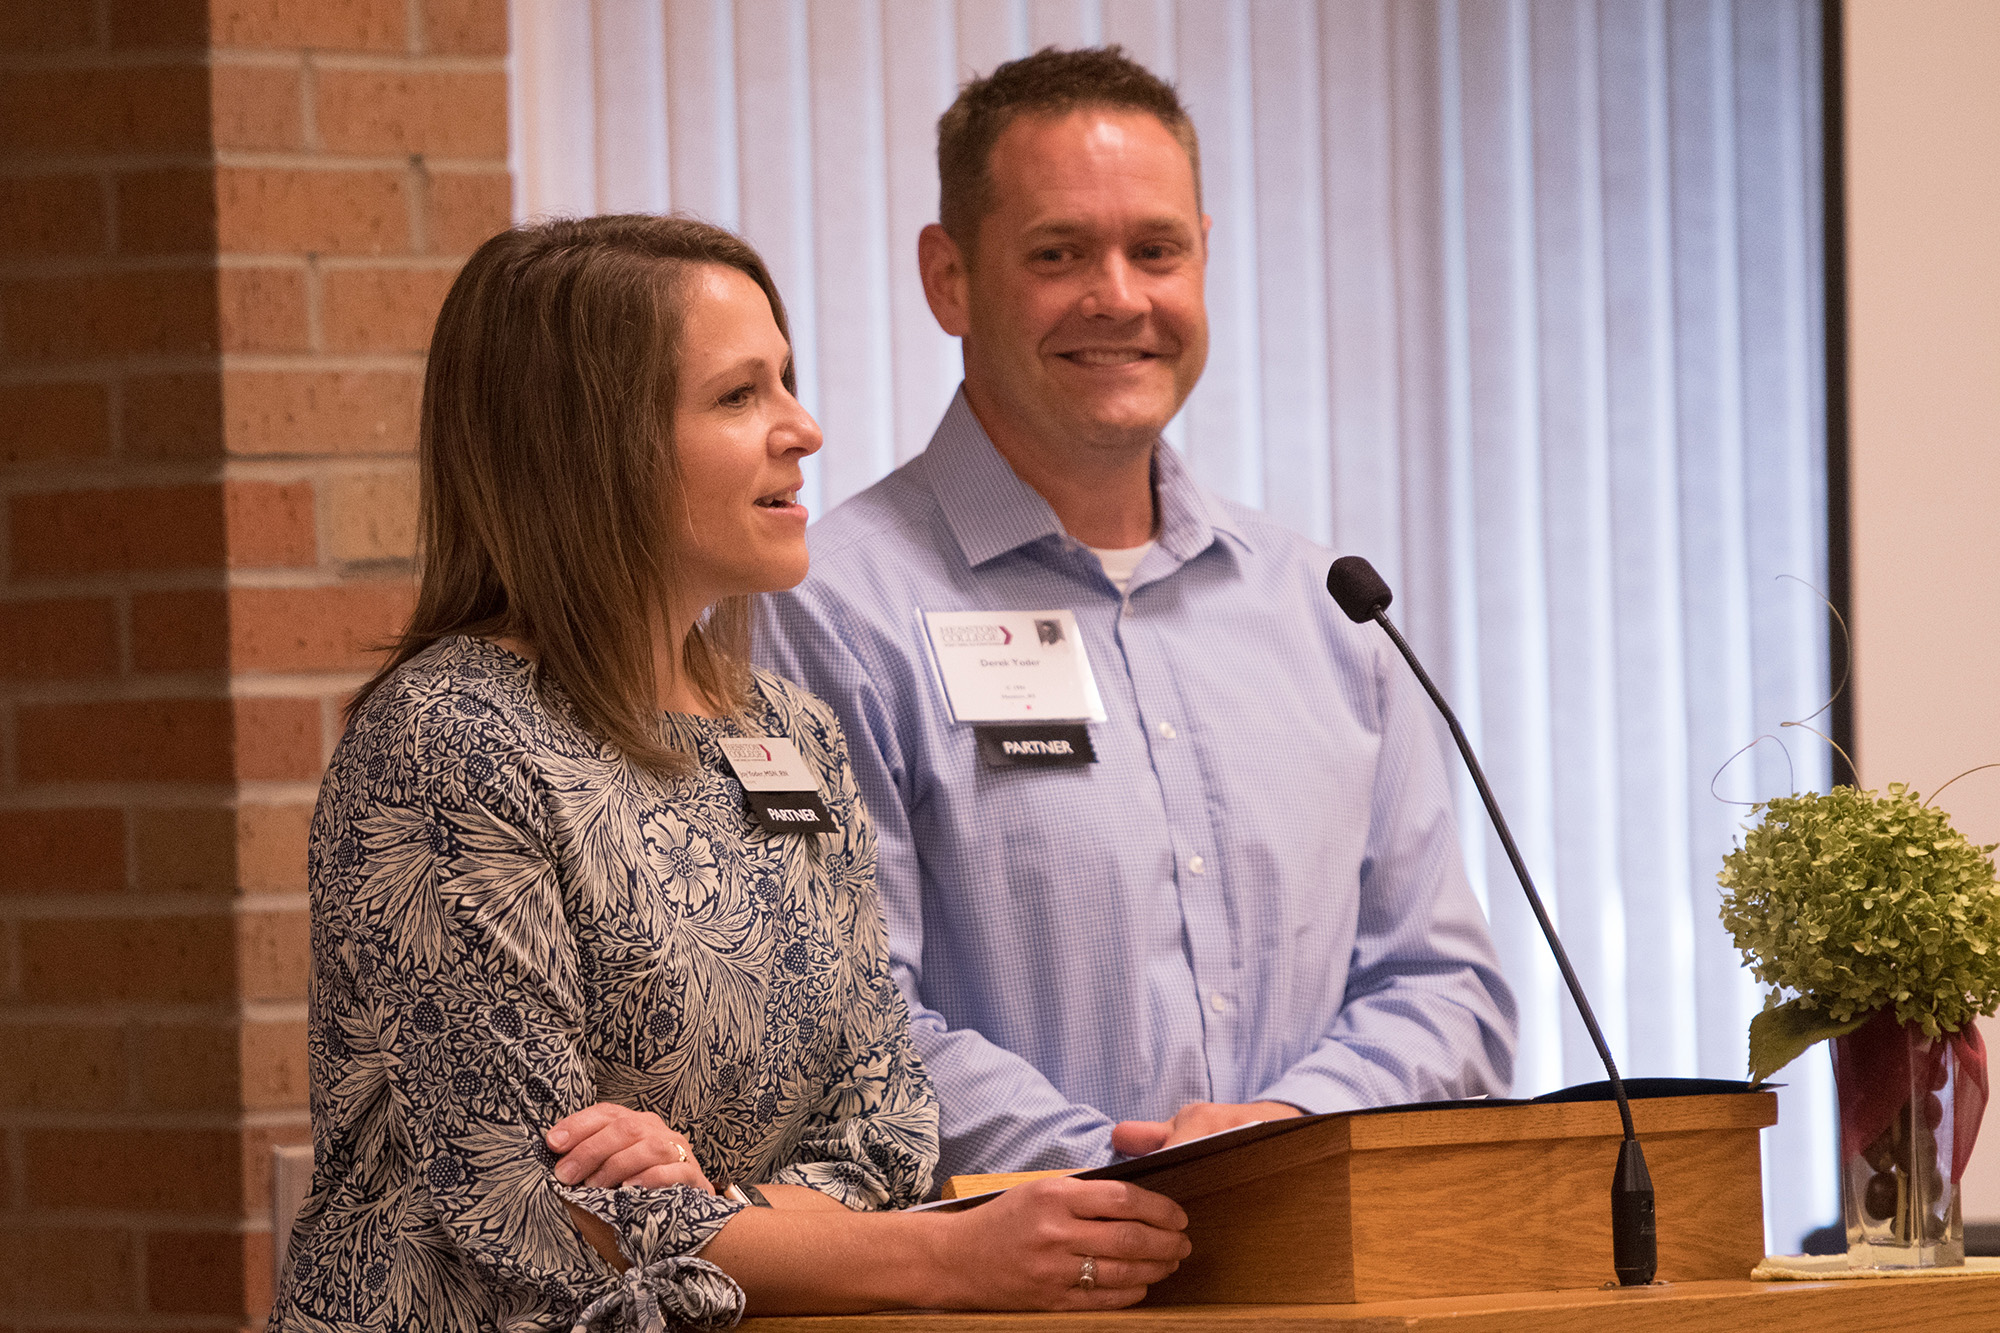 Nursing prof Joy (Smith) '96 and former staff Derek '96 Yoder speak at the annual Partner Luncheon.